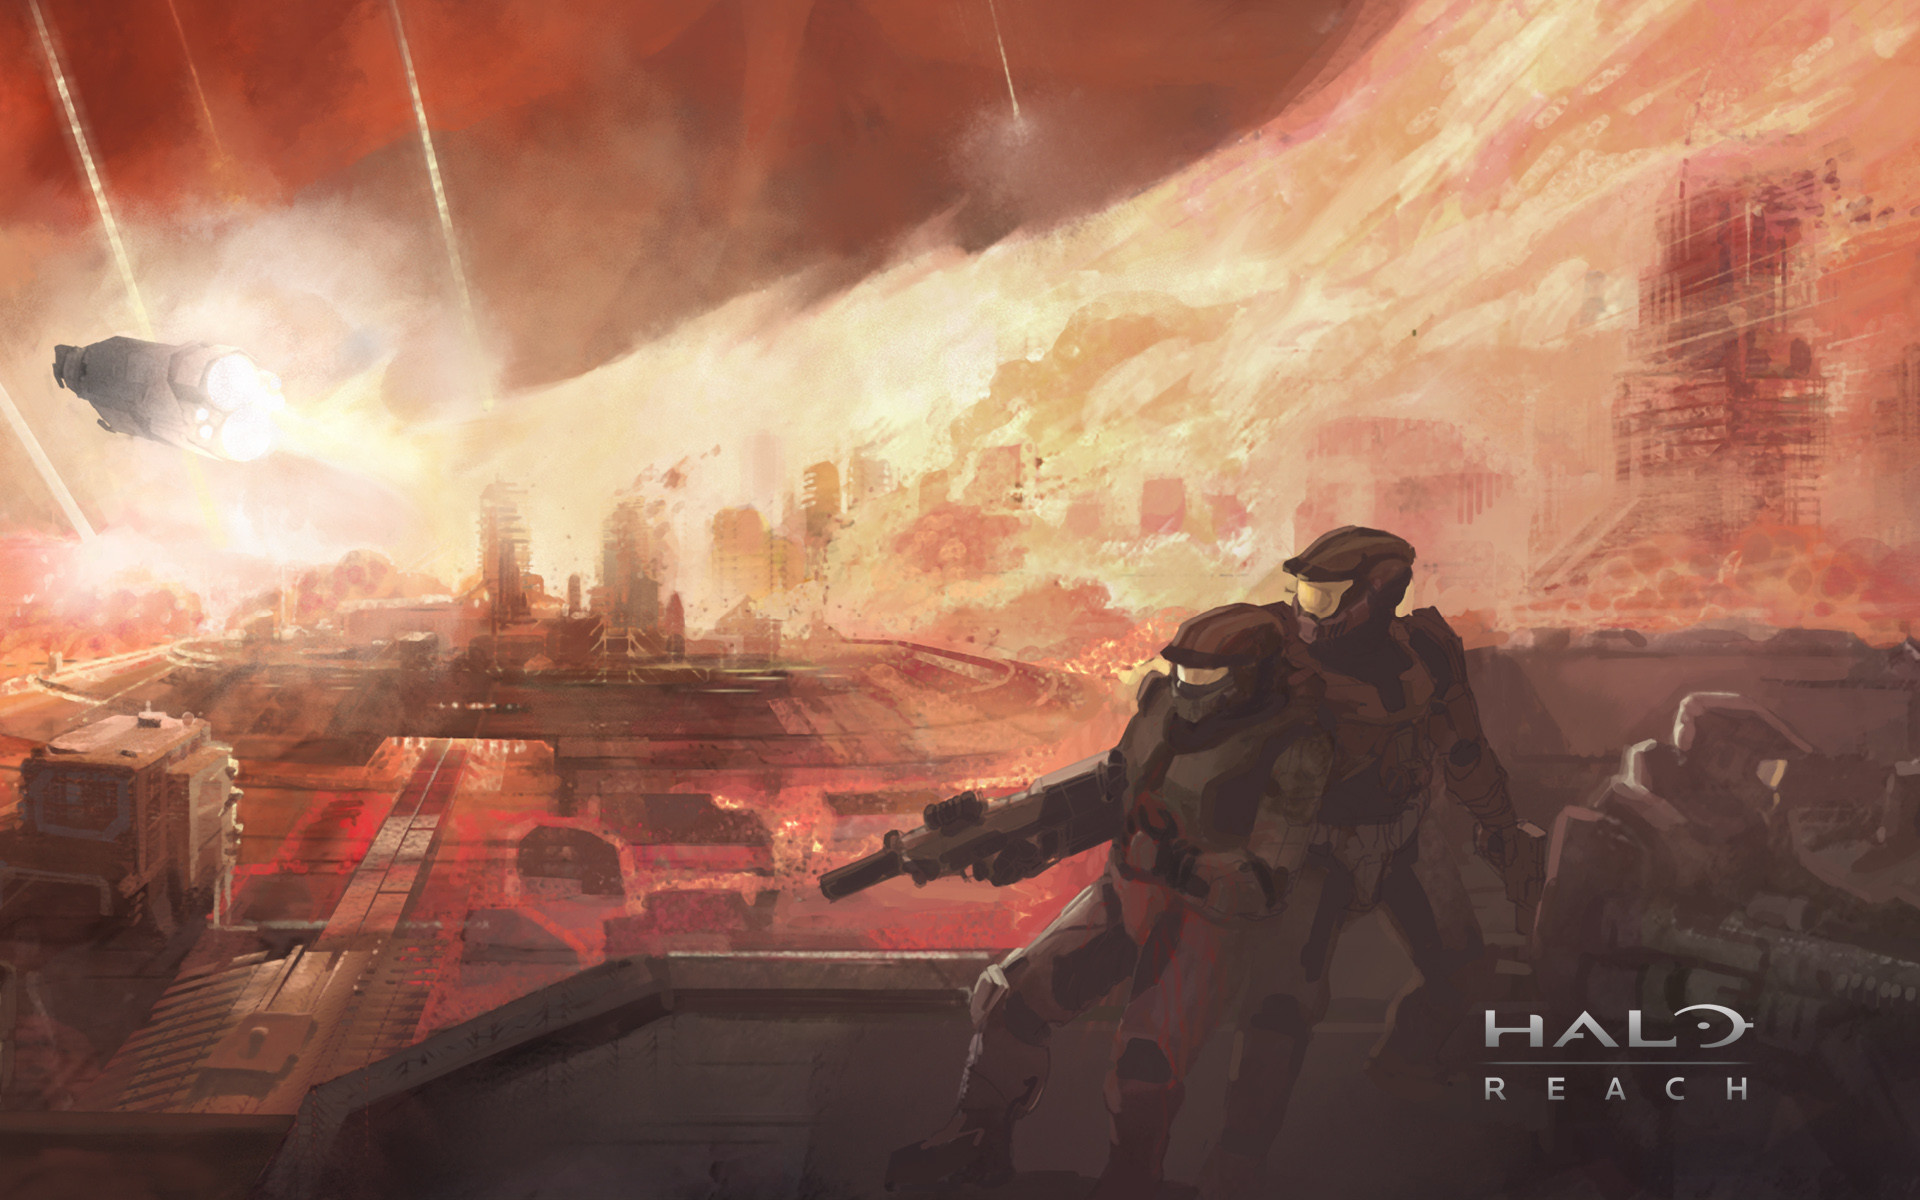 1920x1200 Halo: Reach HD Wallpaper | Background Image |  | ID:380721 -  Wallpaper Abyss